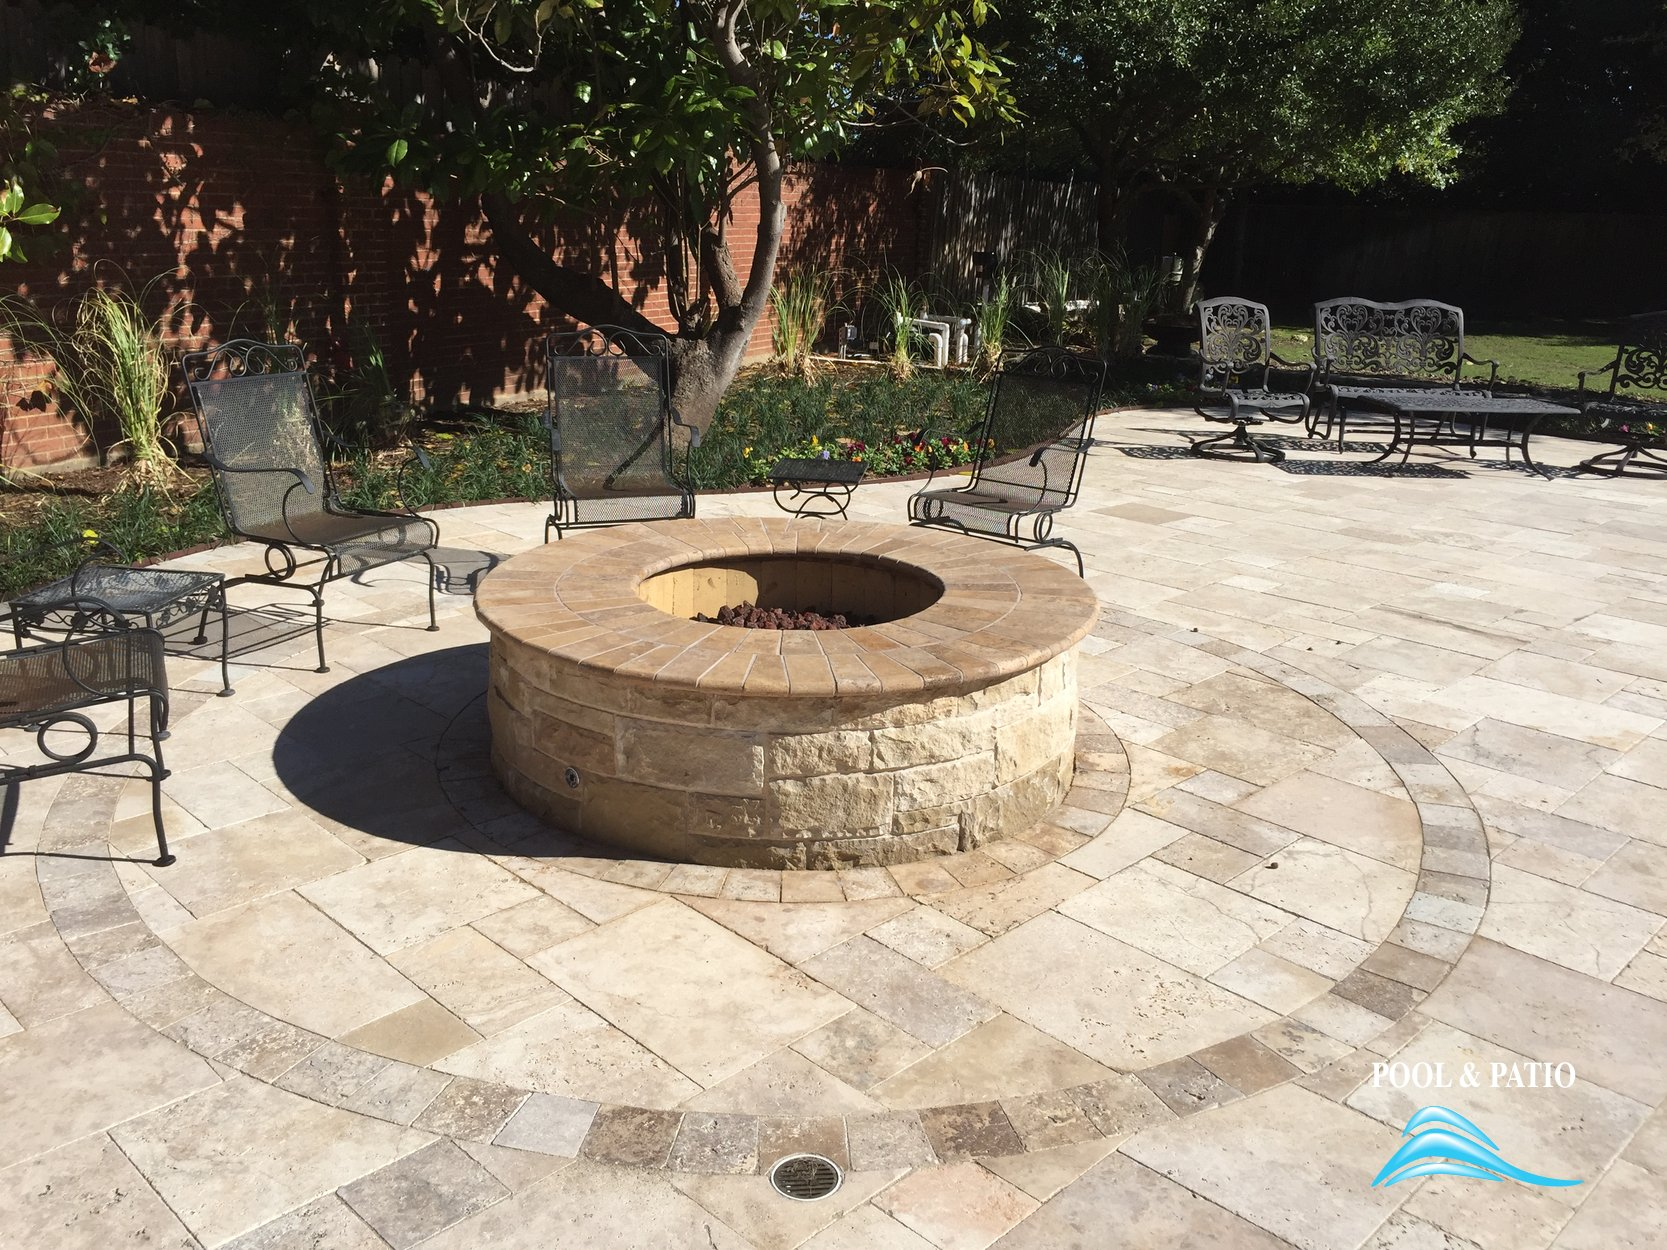 Outdoor living services grand prairie texas for Fire pit ideas outdoor living